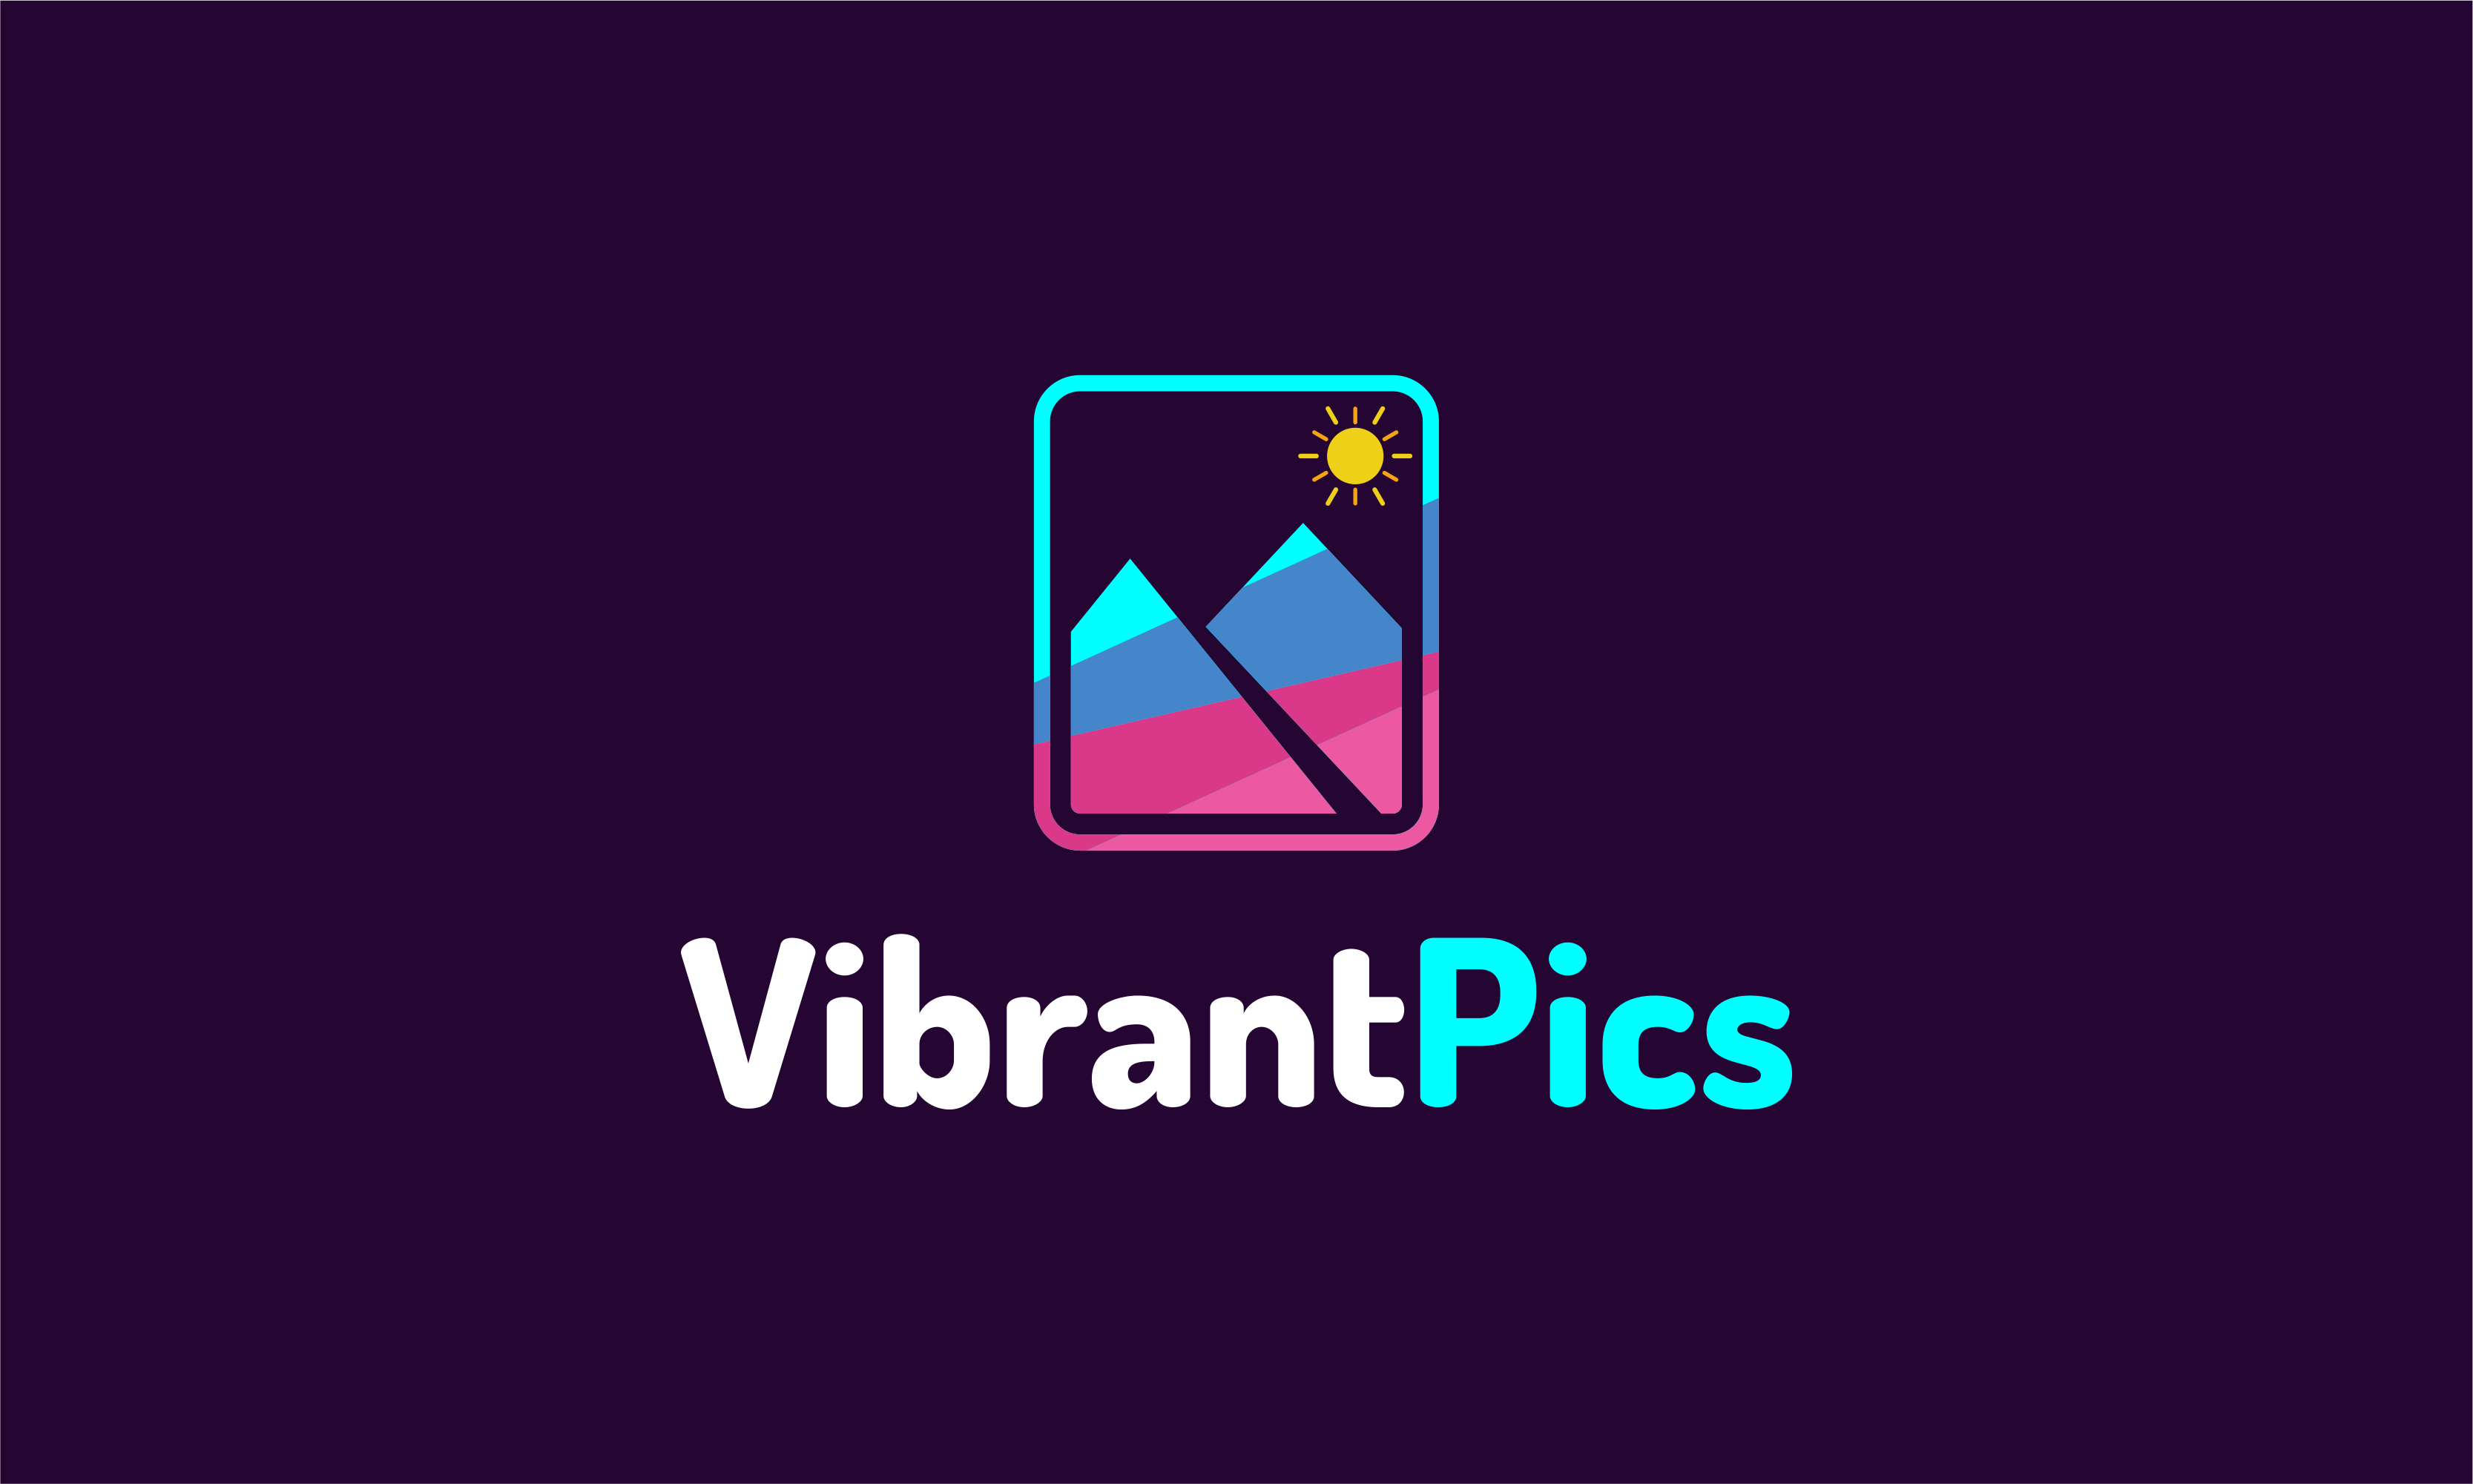 Vibrantpics - Media domain name for sale